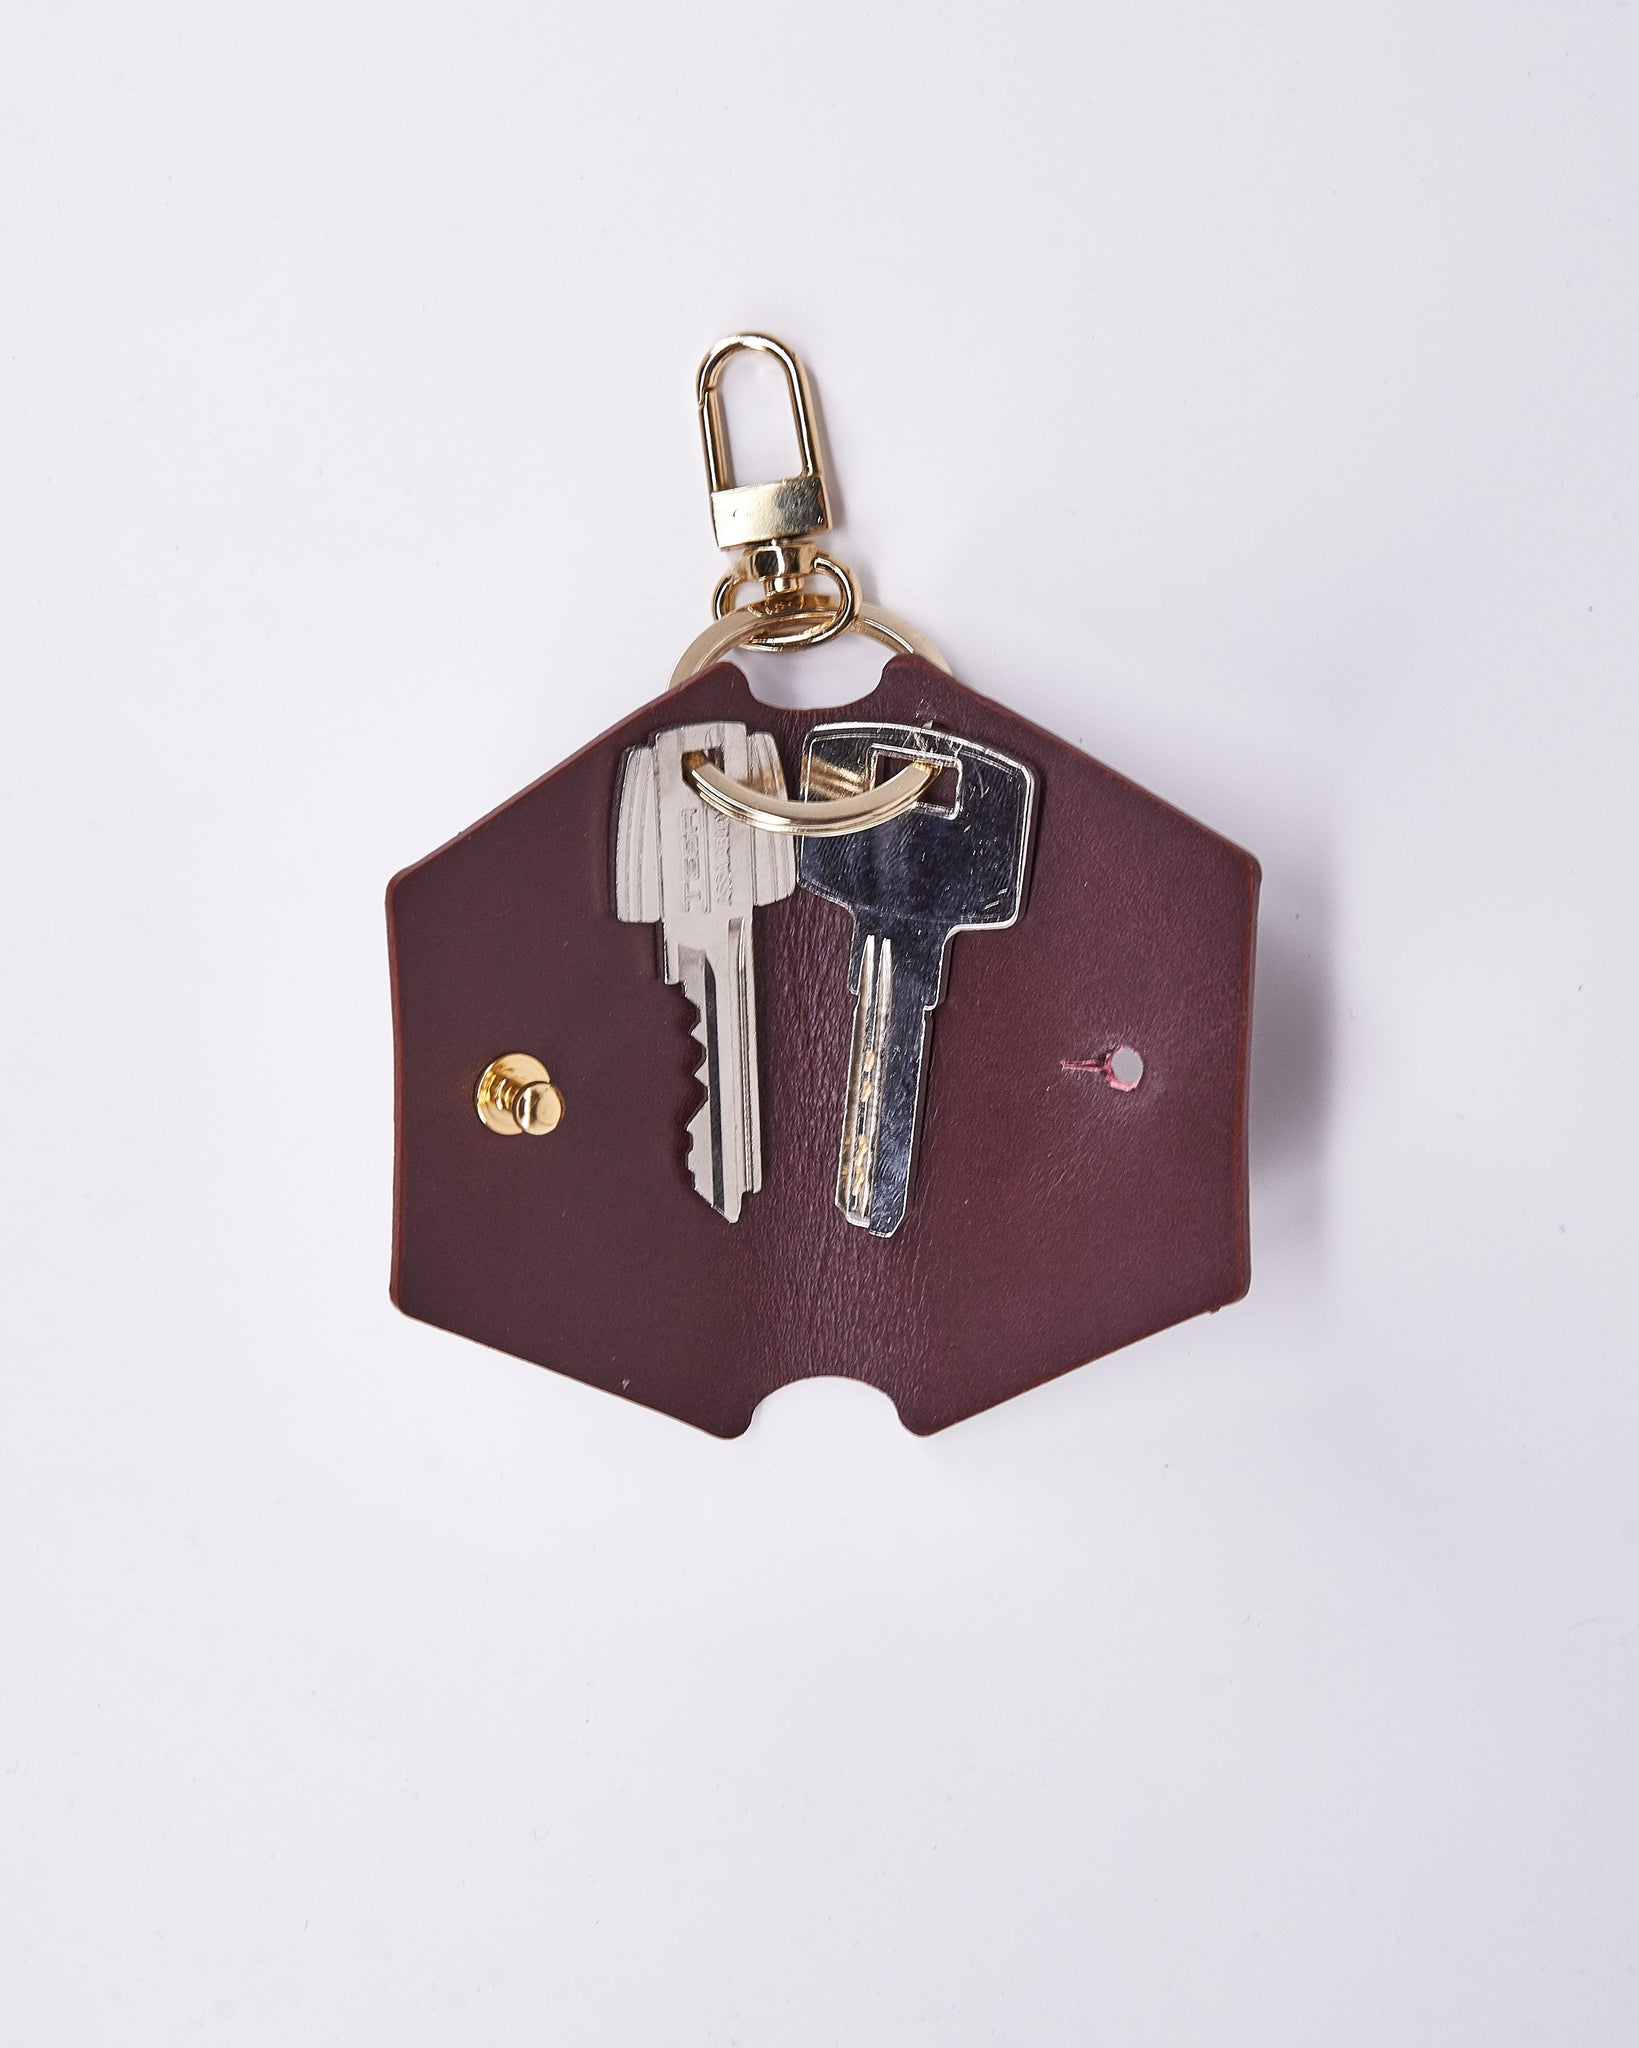 KeyWrap-Nuovum-Leather-Bordeaux-localdesigners-Barcelona-Nuovum-Handmade-Open